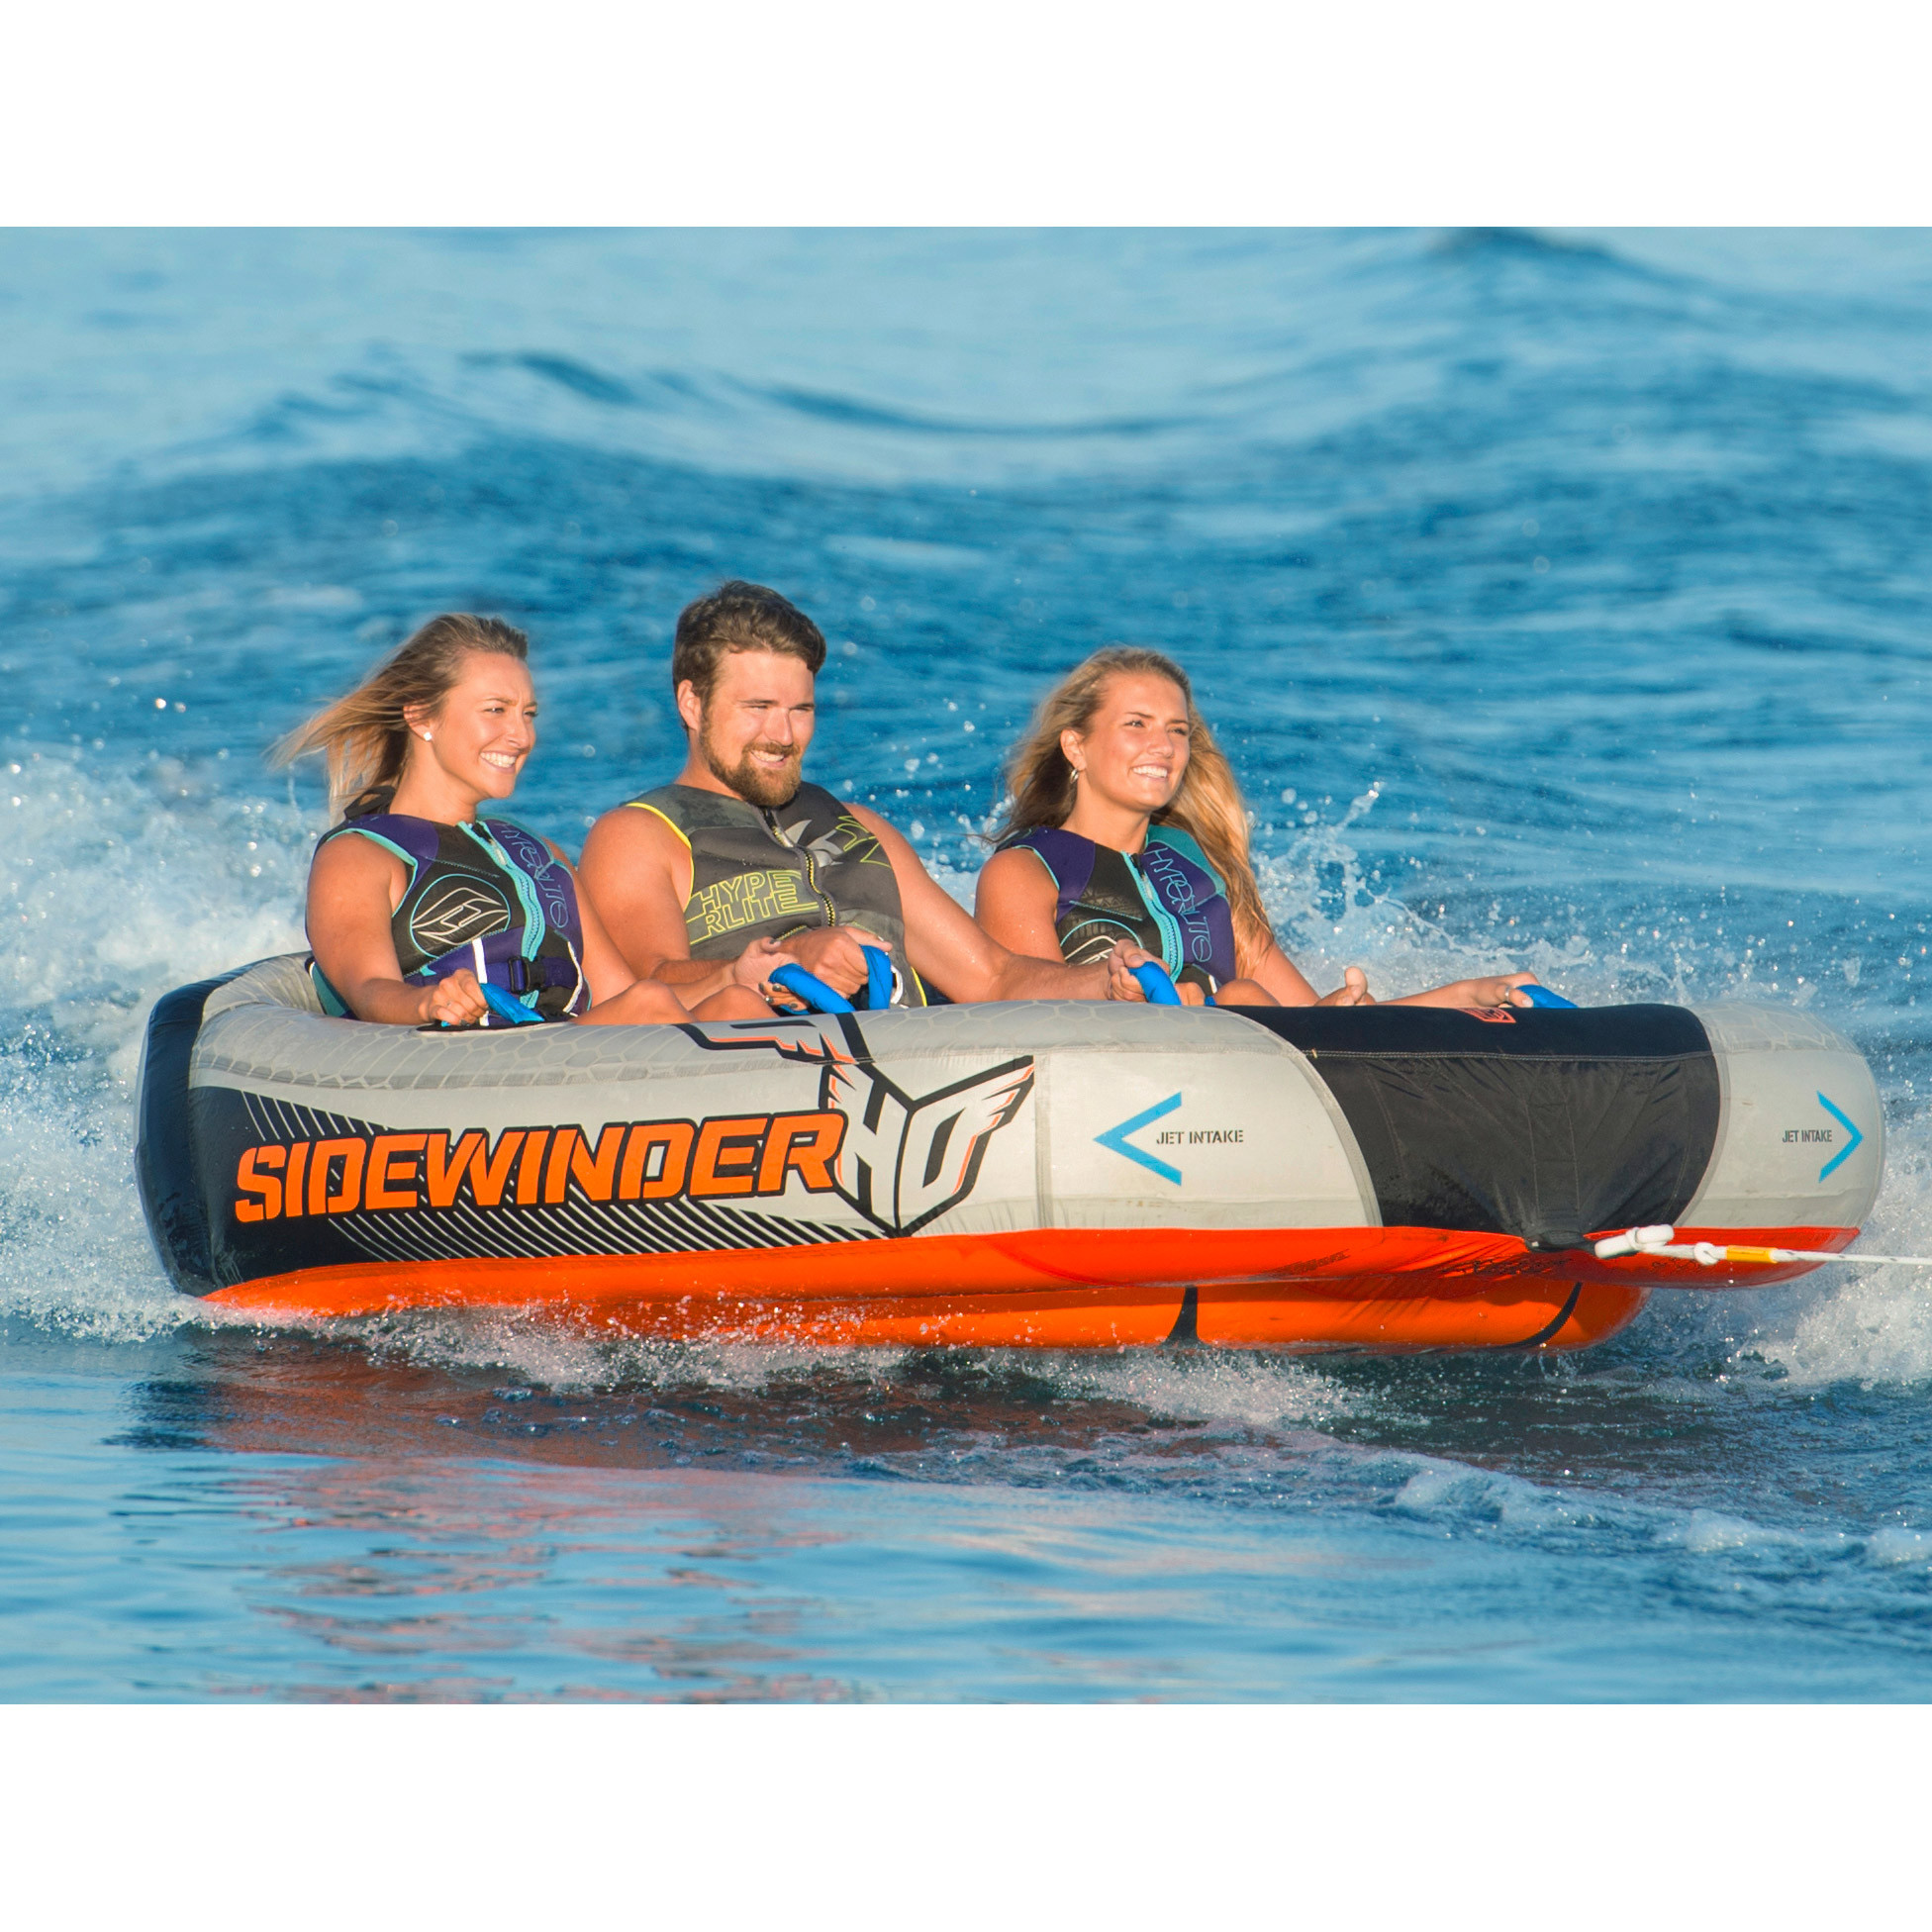 HO Sports Sidewinder 3-person Towable by